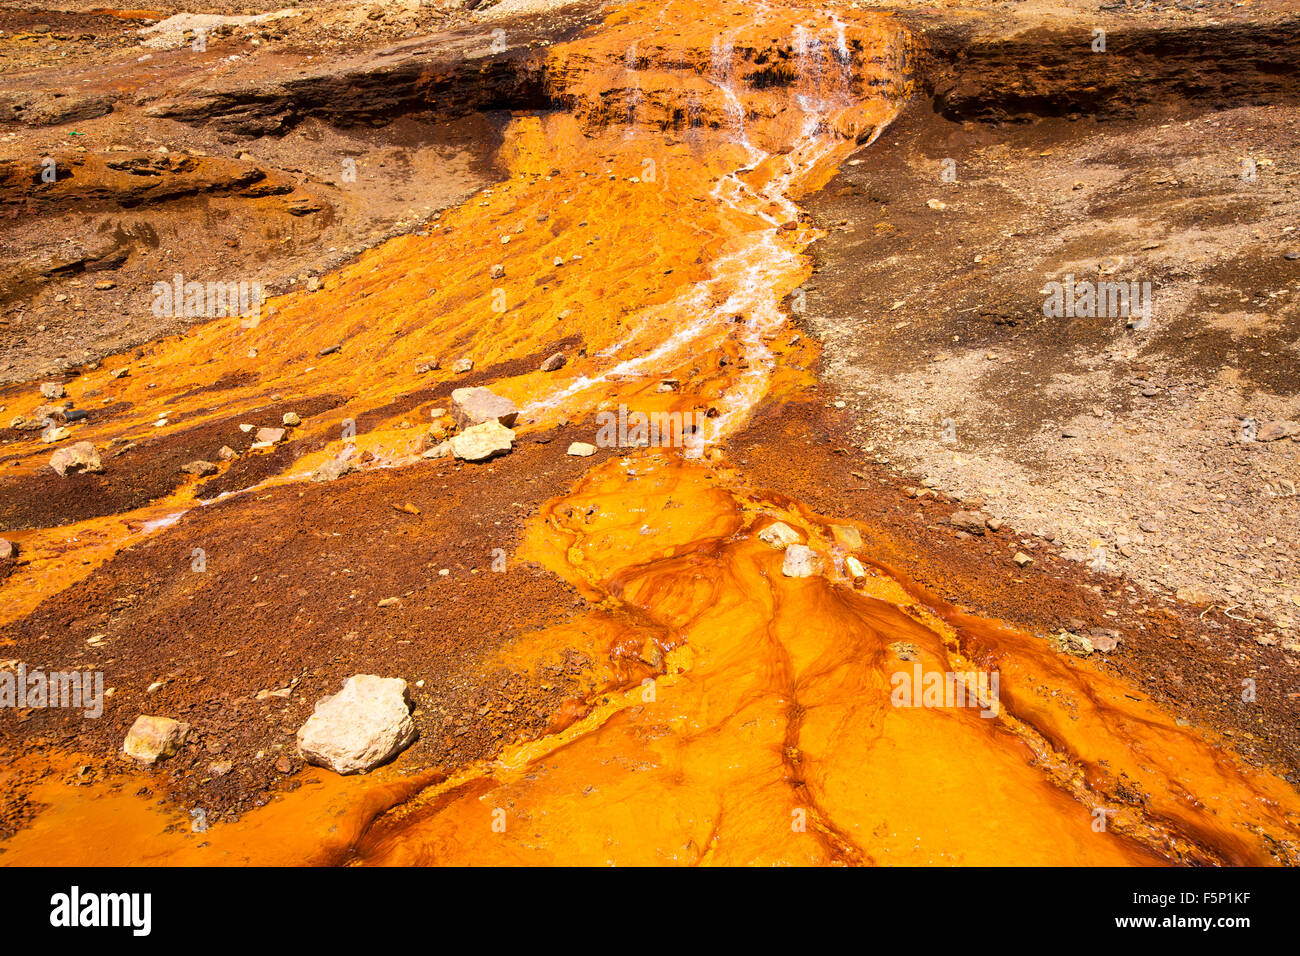 Contaminated mine effluent leaking out of a mine on Chacaltaya peak in the Bolivian Andes. - Stock Image